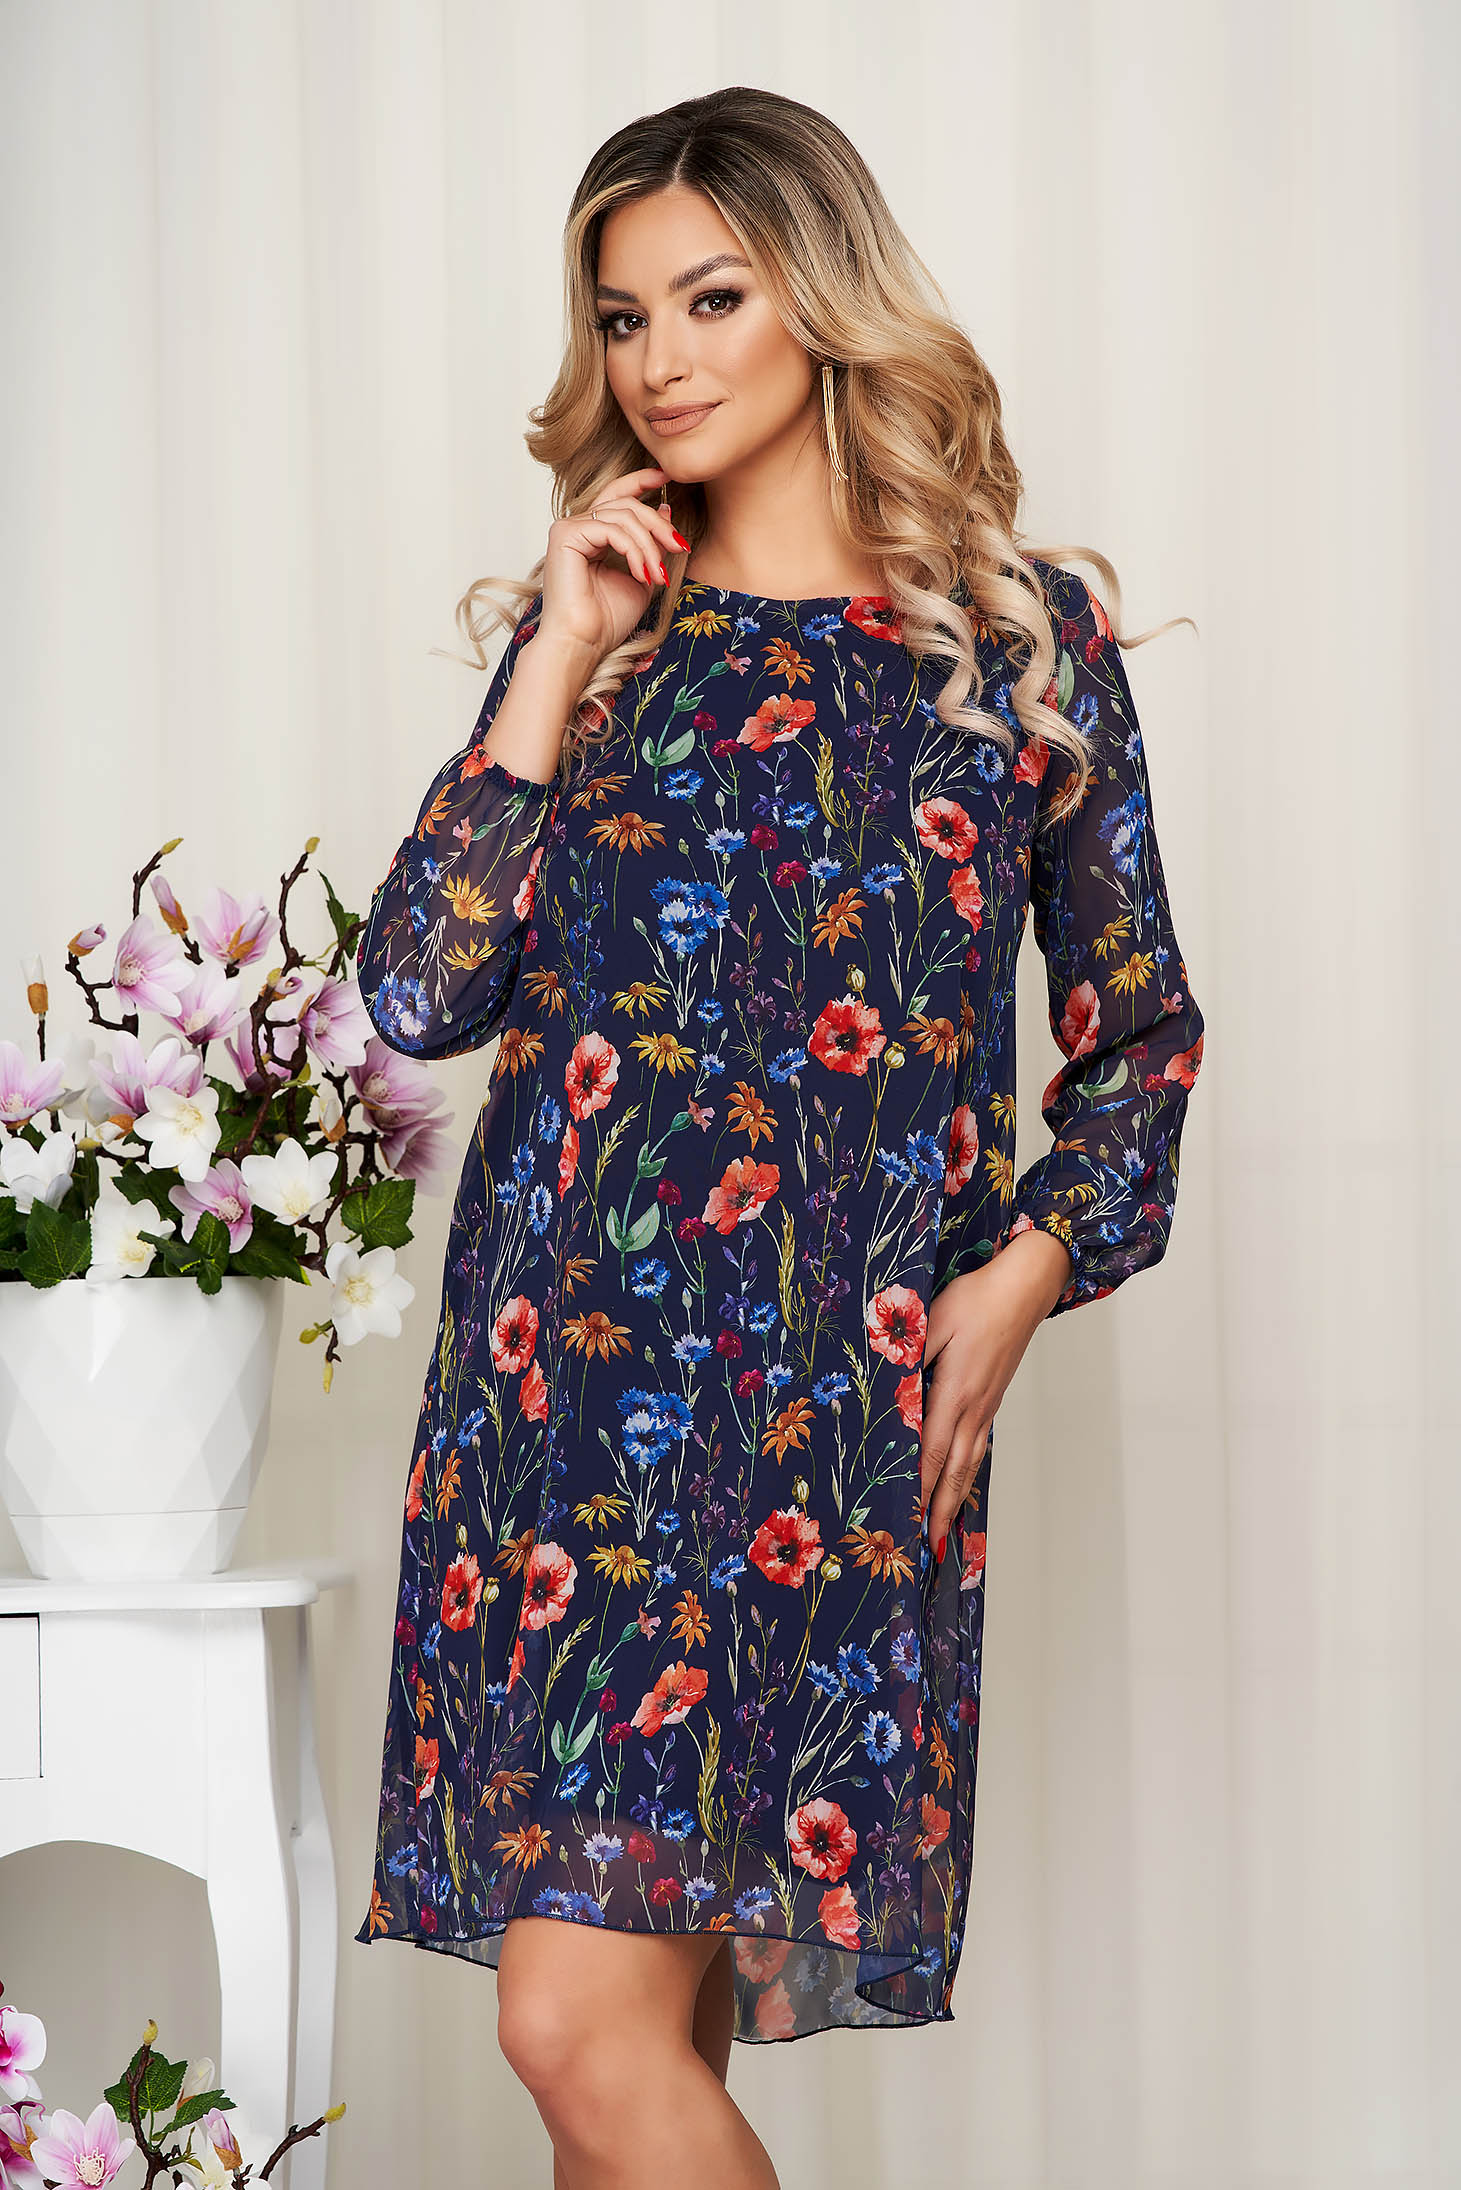 Darkblue dress from veil fabric with floral print with inside lining